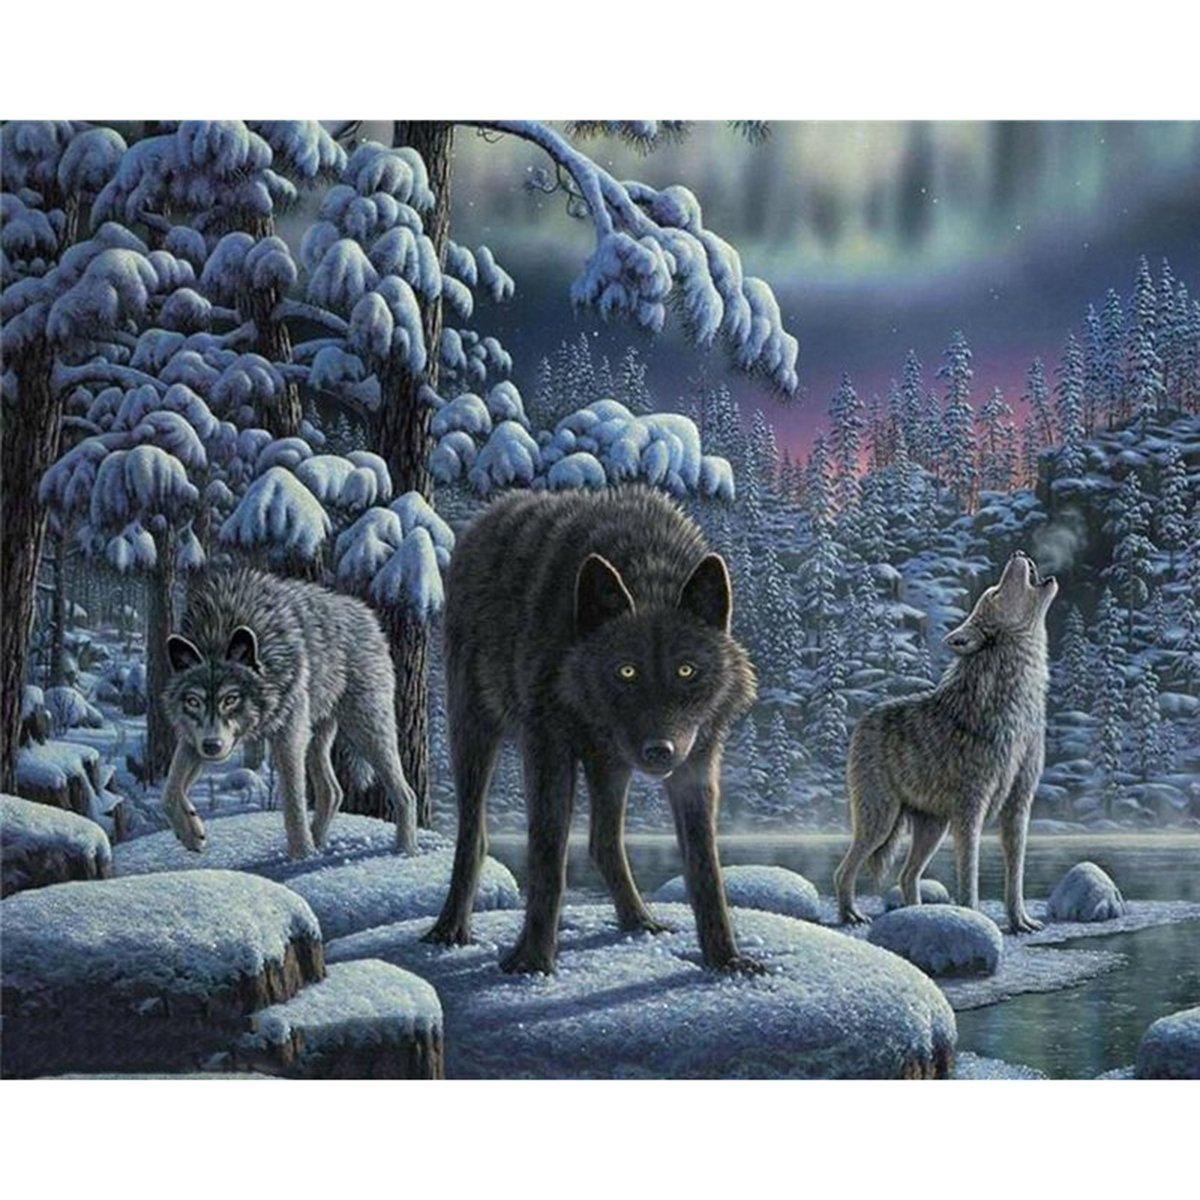 Shukqueen Diy Oil Painting, Adult's Paint by Number Kits, Acrylic Painting-Three Wolves 16X20 Inch (Framed Canvas)